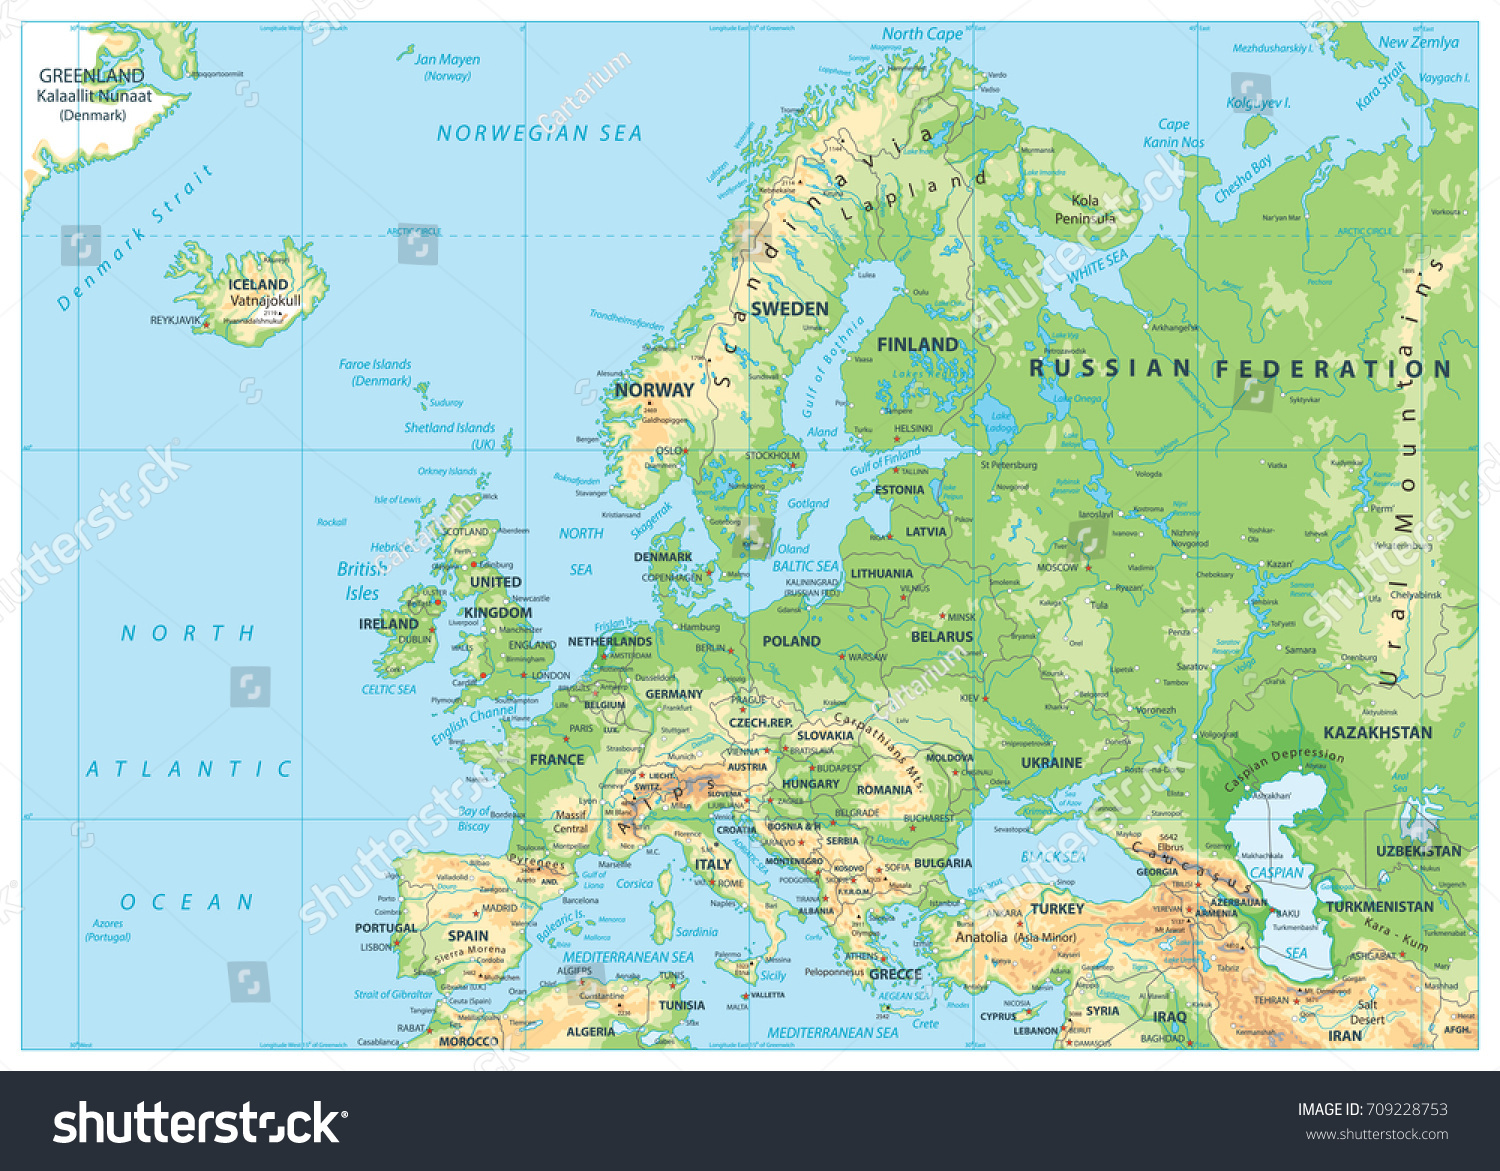 Picture of: Europe Physical Map No Bathymetry Detailed Stock Vector Royalty Free 709228753